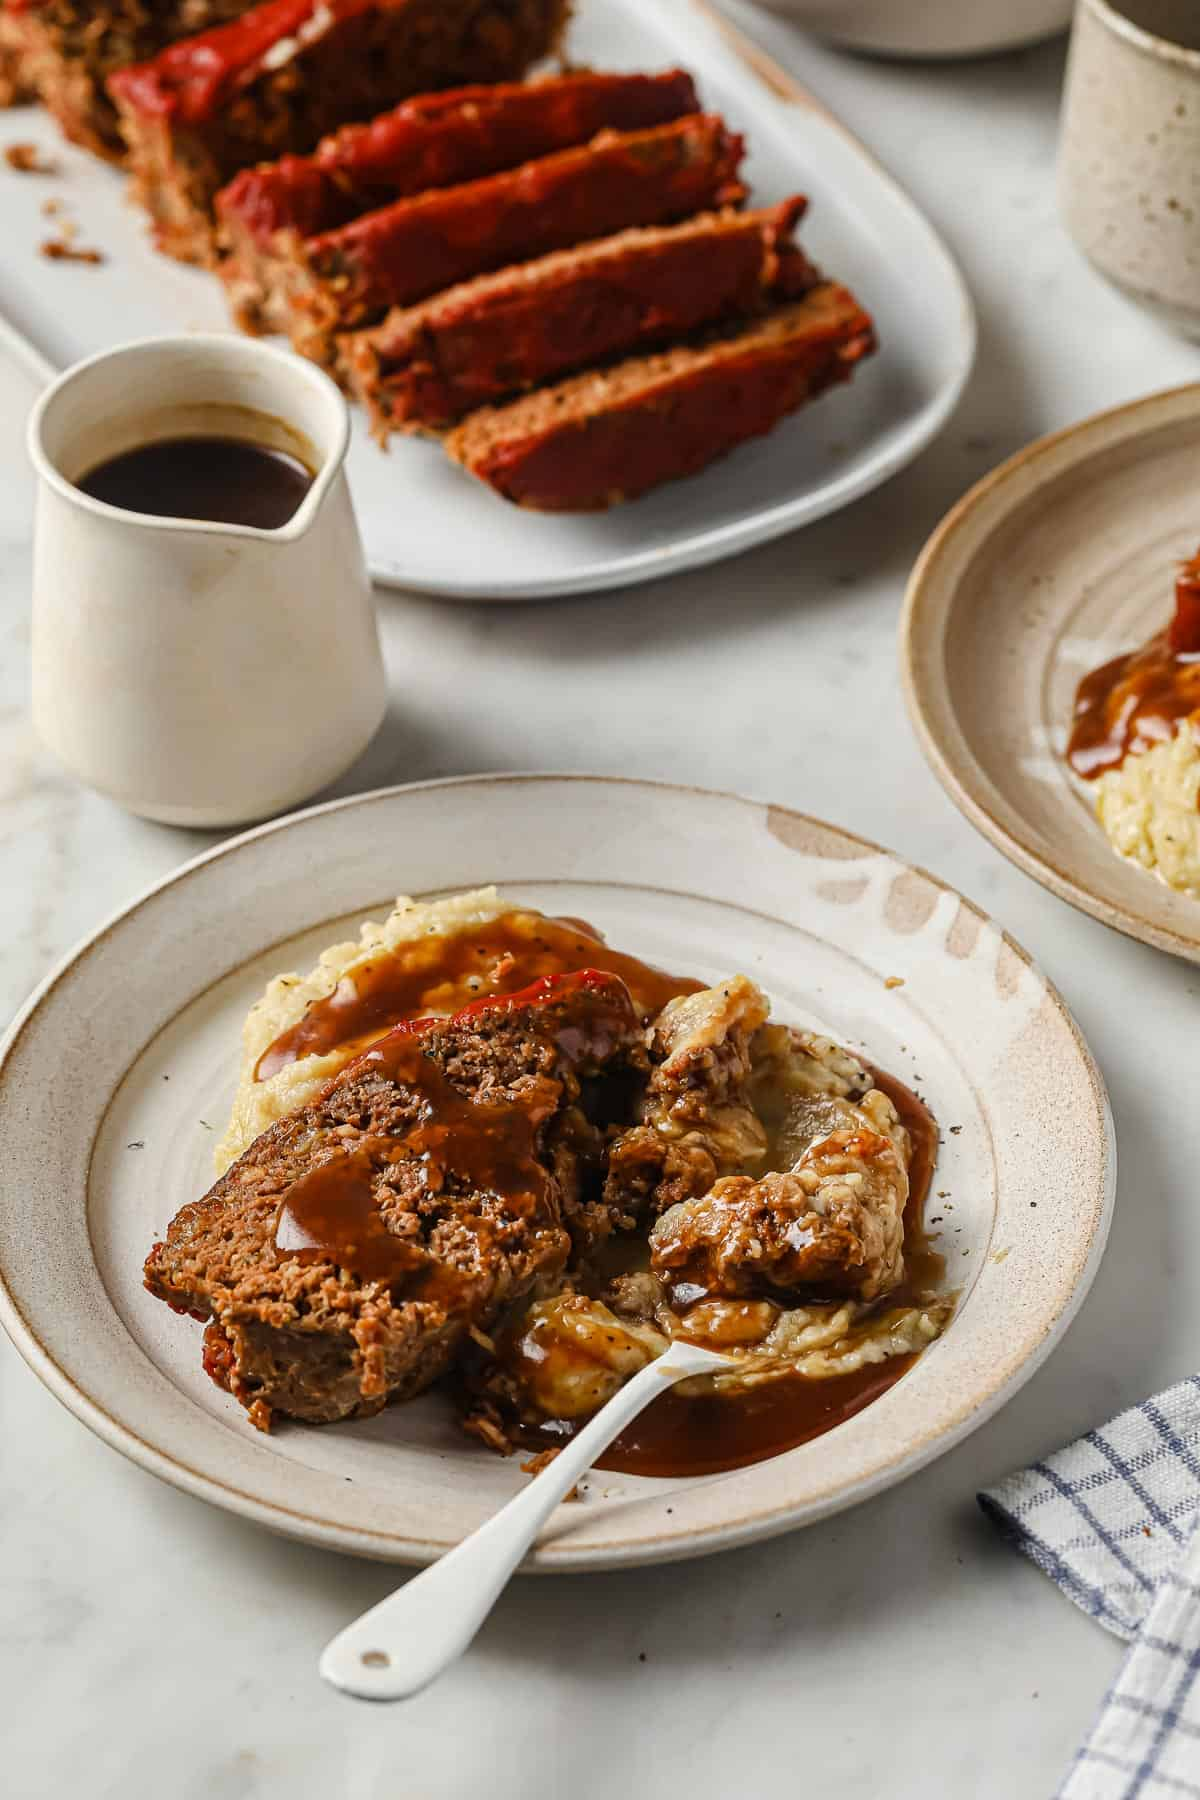 Meatloaf with cauliflower mash and gravy served on a white plate